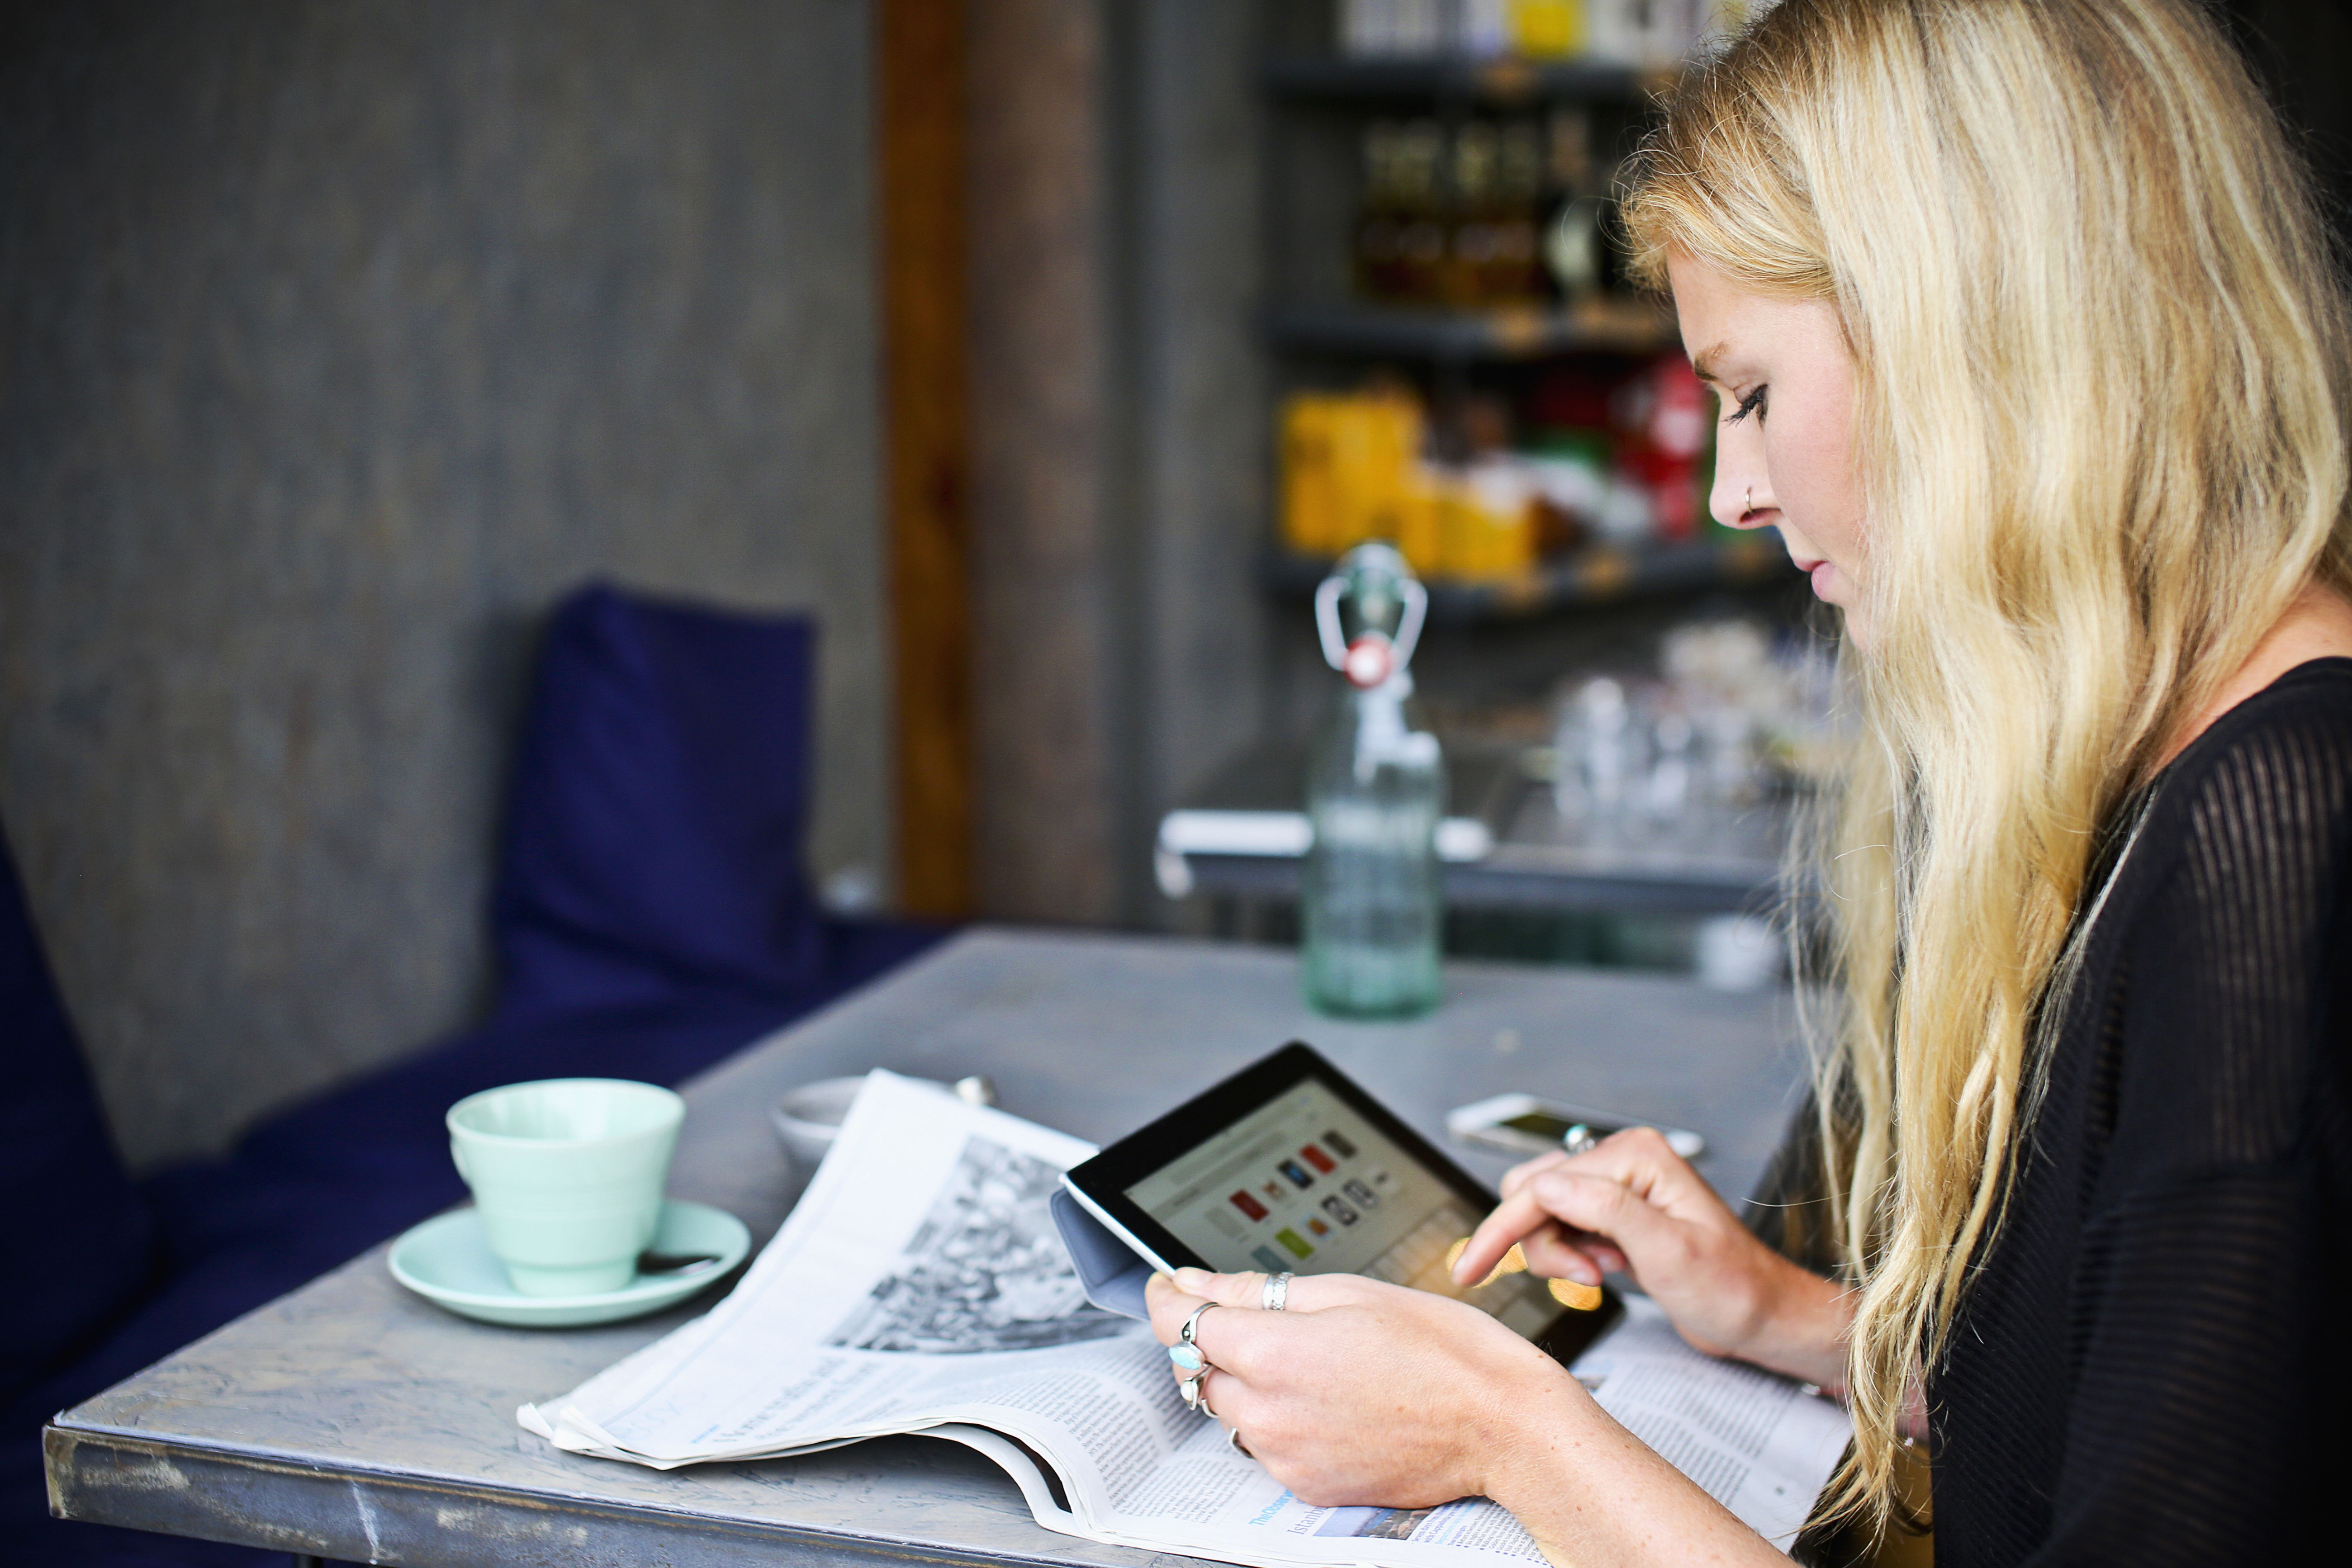 Woman Using a Tablet Computer in a Cafe